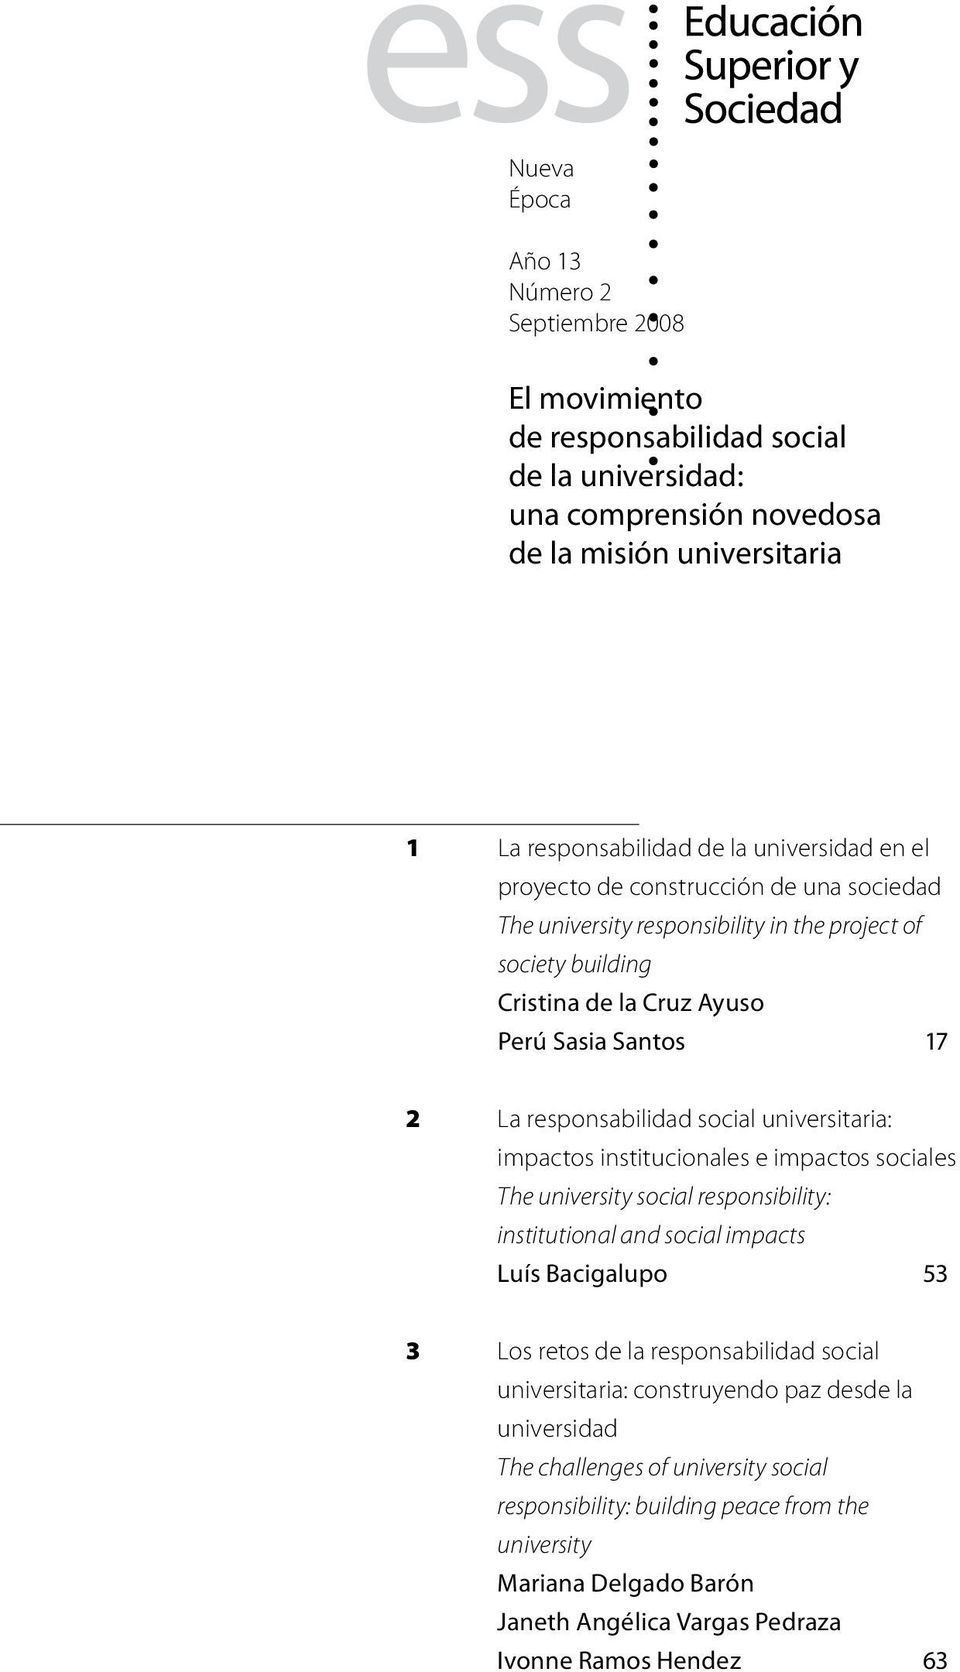 universitaria: impactos institucionales e impactos sociales The university social responsibility: institutional and social impacts Luís Bacigalupo 53 3 Los retos de la responsabilidad social